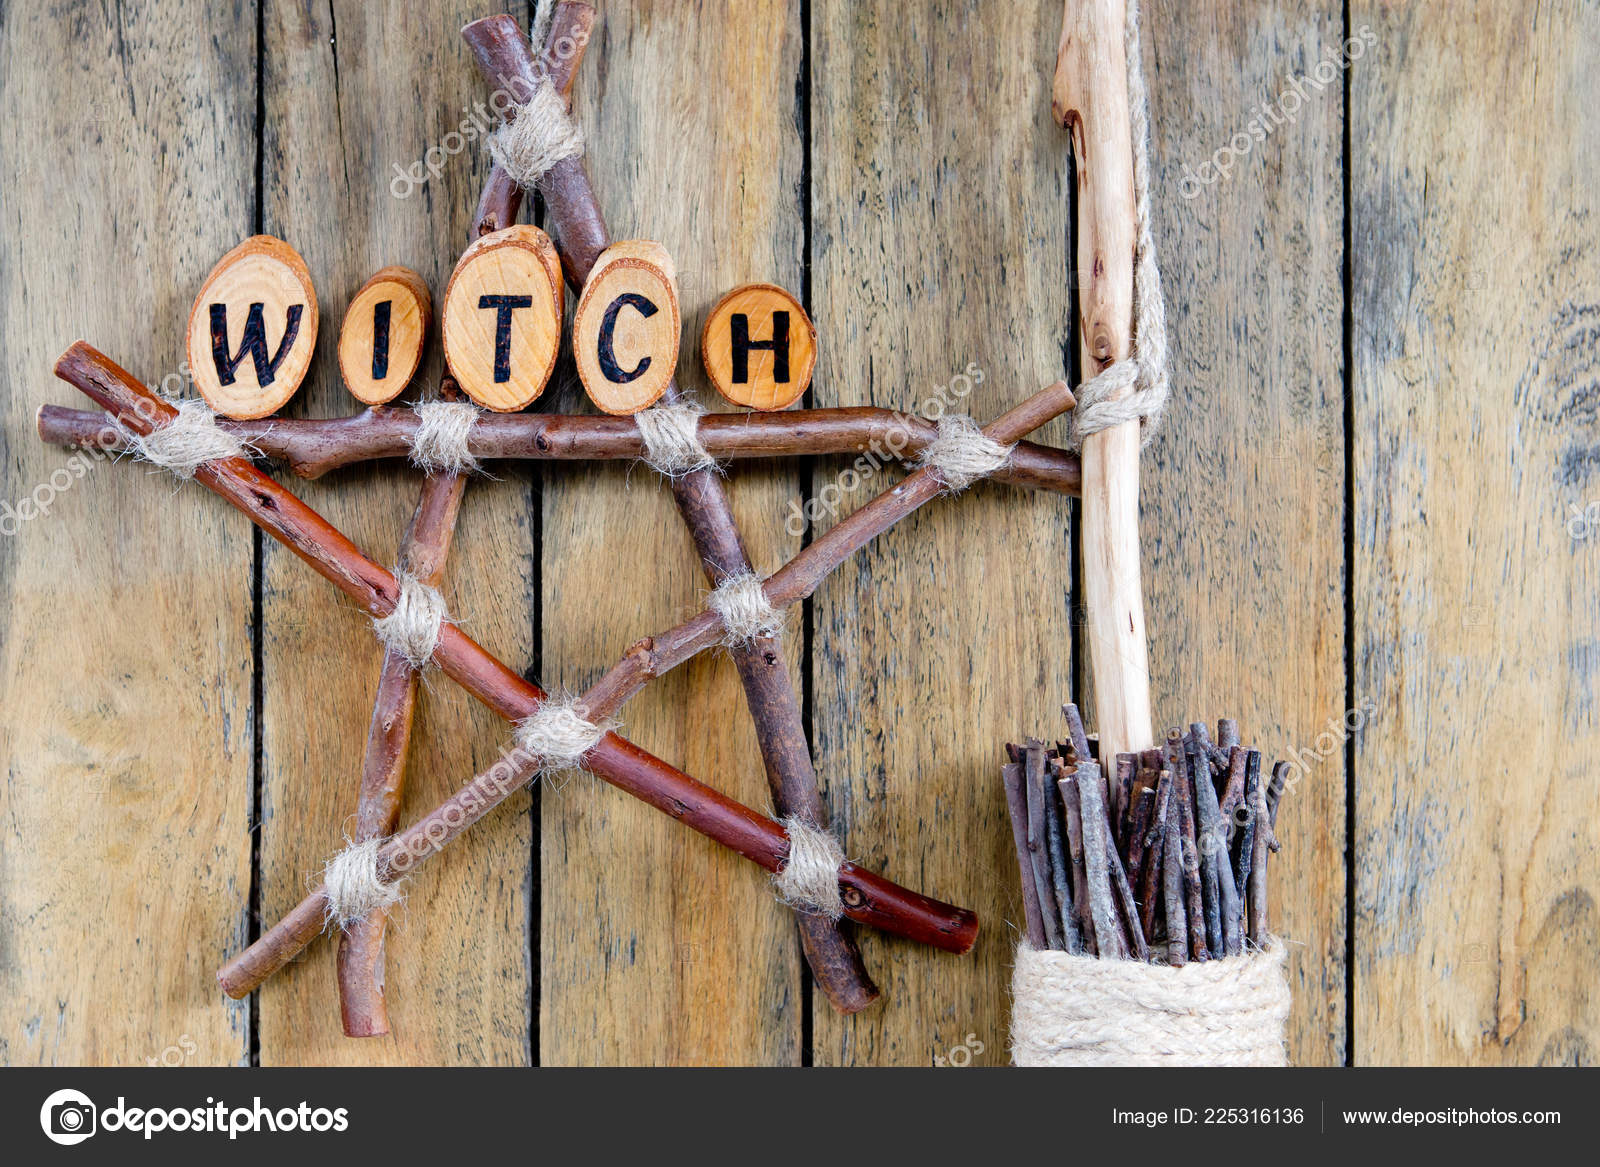 Witch Branch Pentagram Dried Herbs Besom Witches Broom